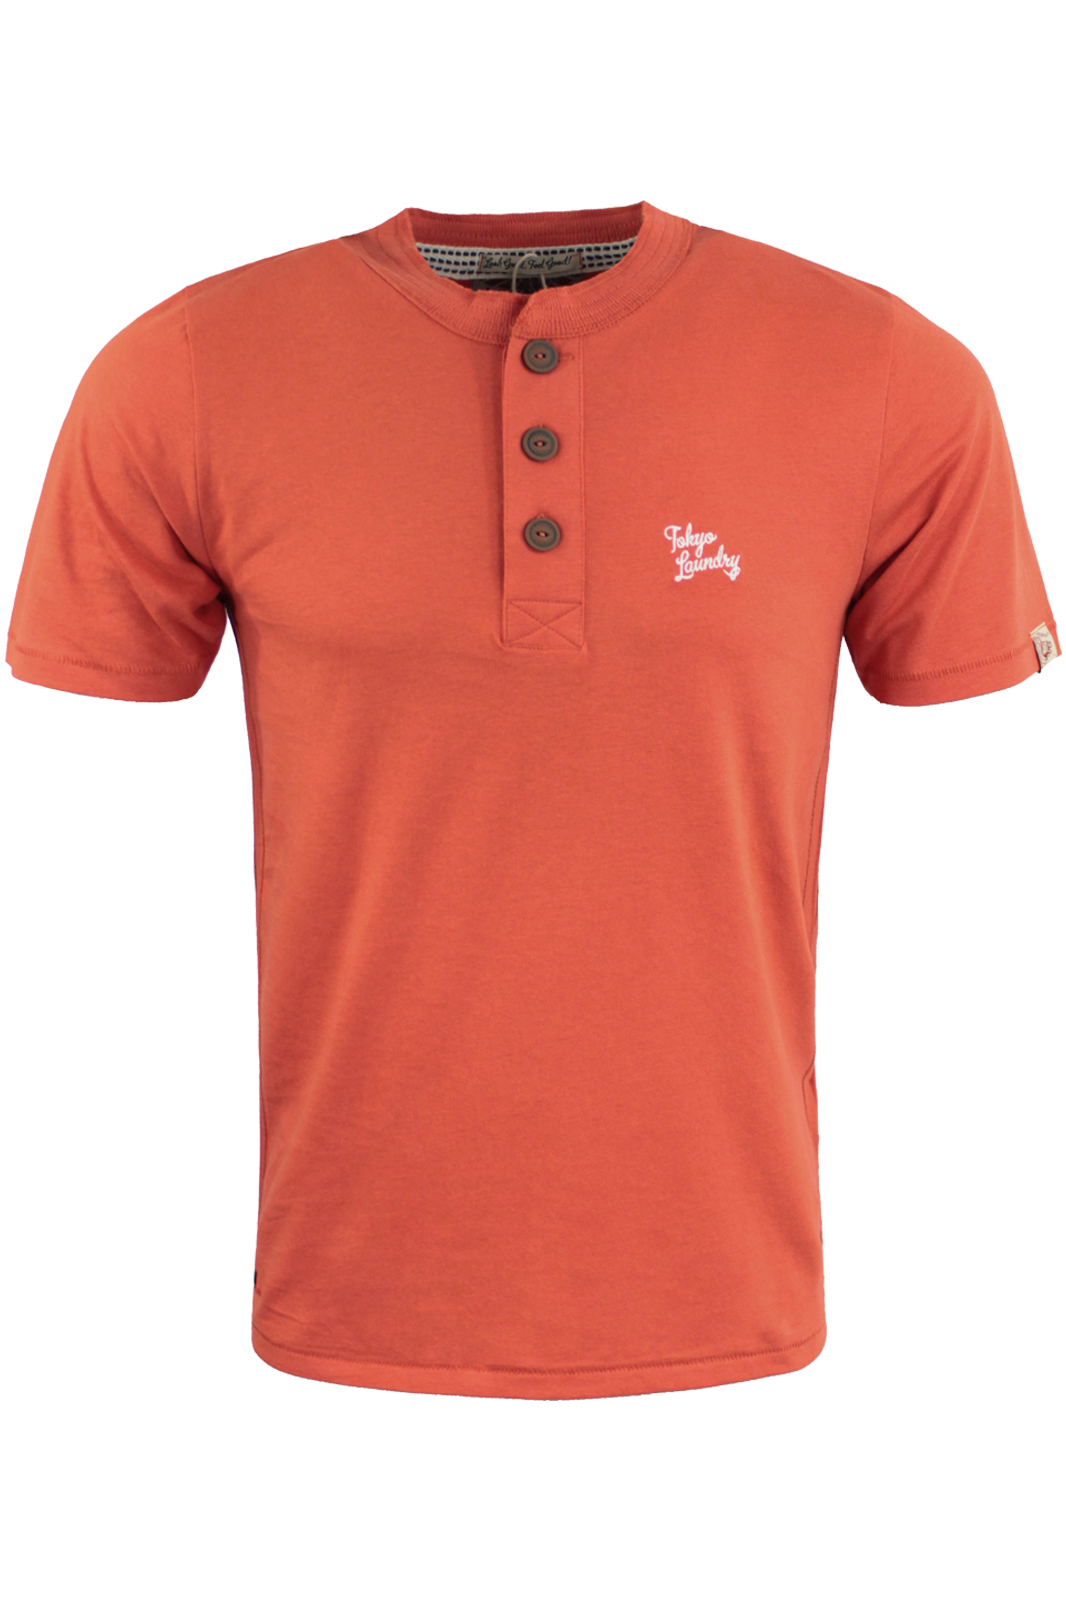 FREE SHIPPING AVAILABLE! Shop truexfilepv.cf and save on Henley Shirts Shirts.